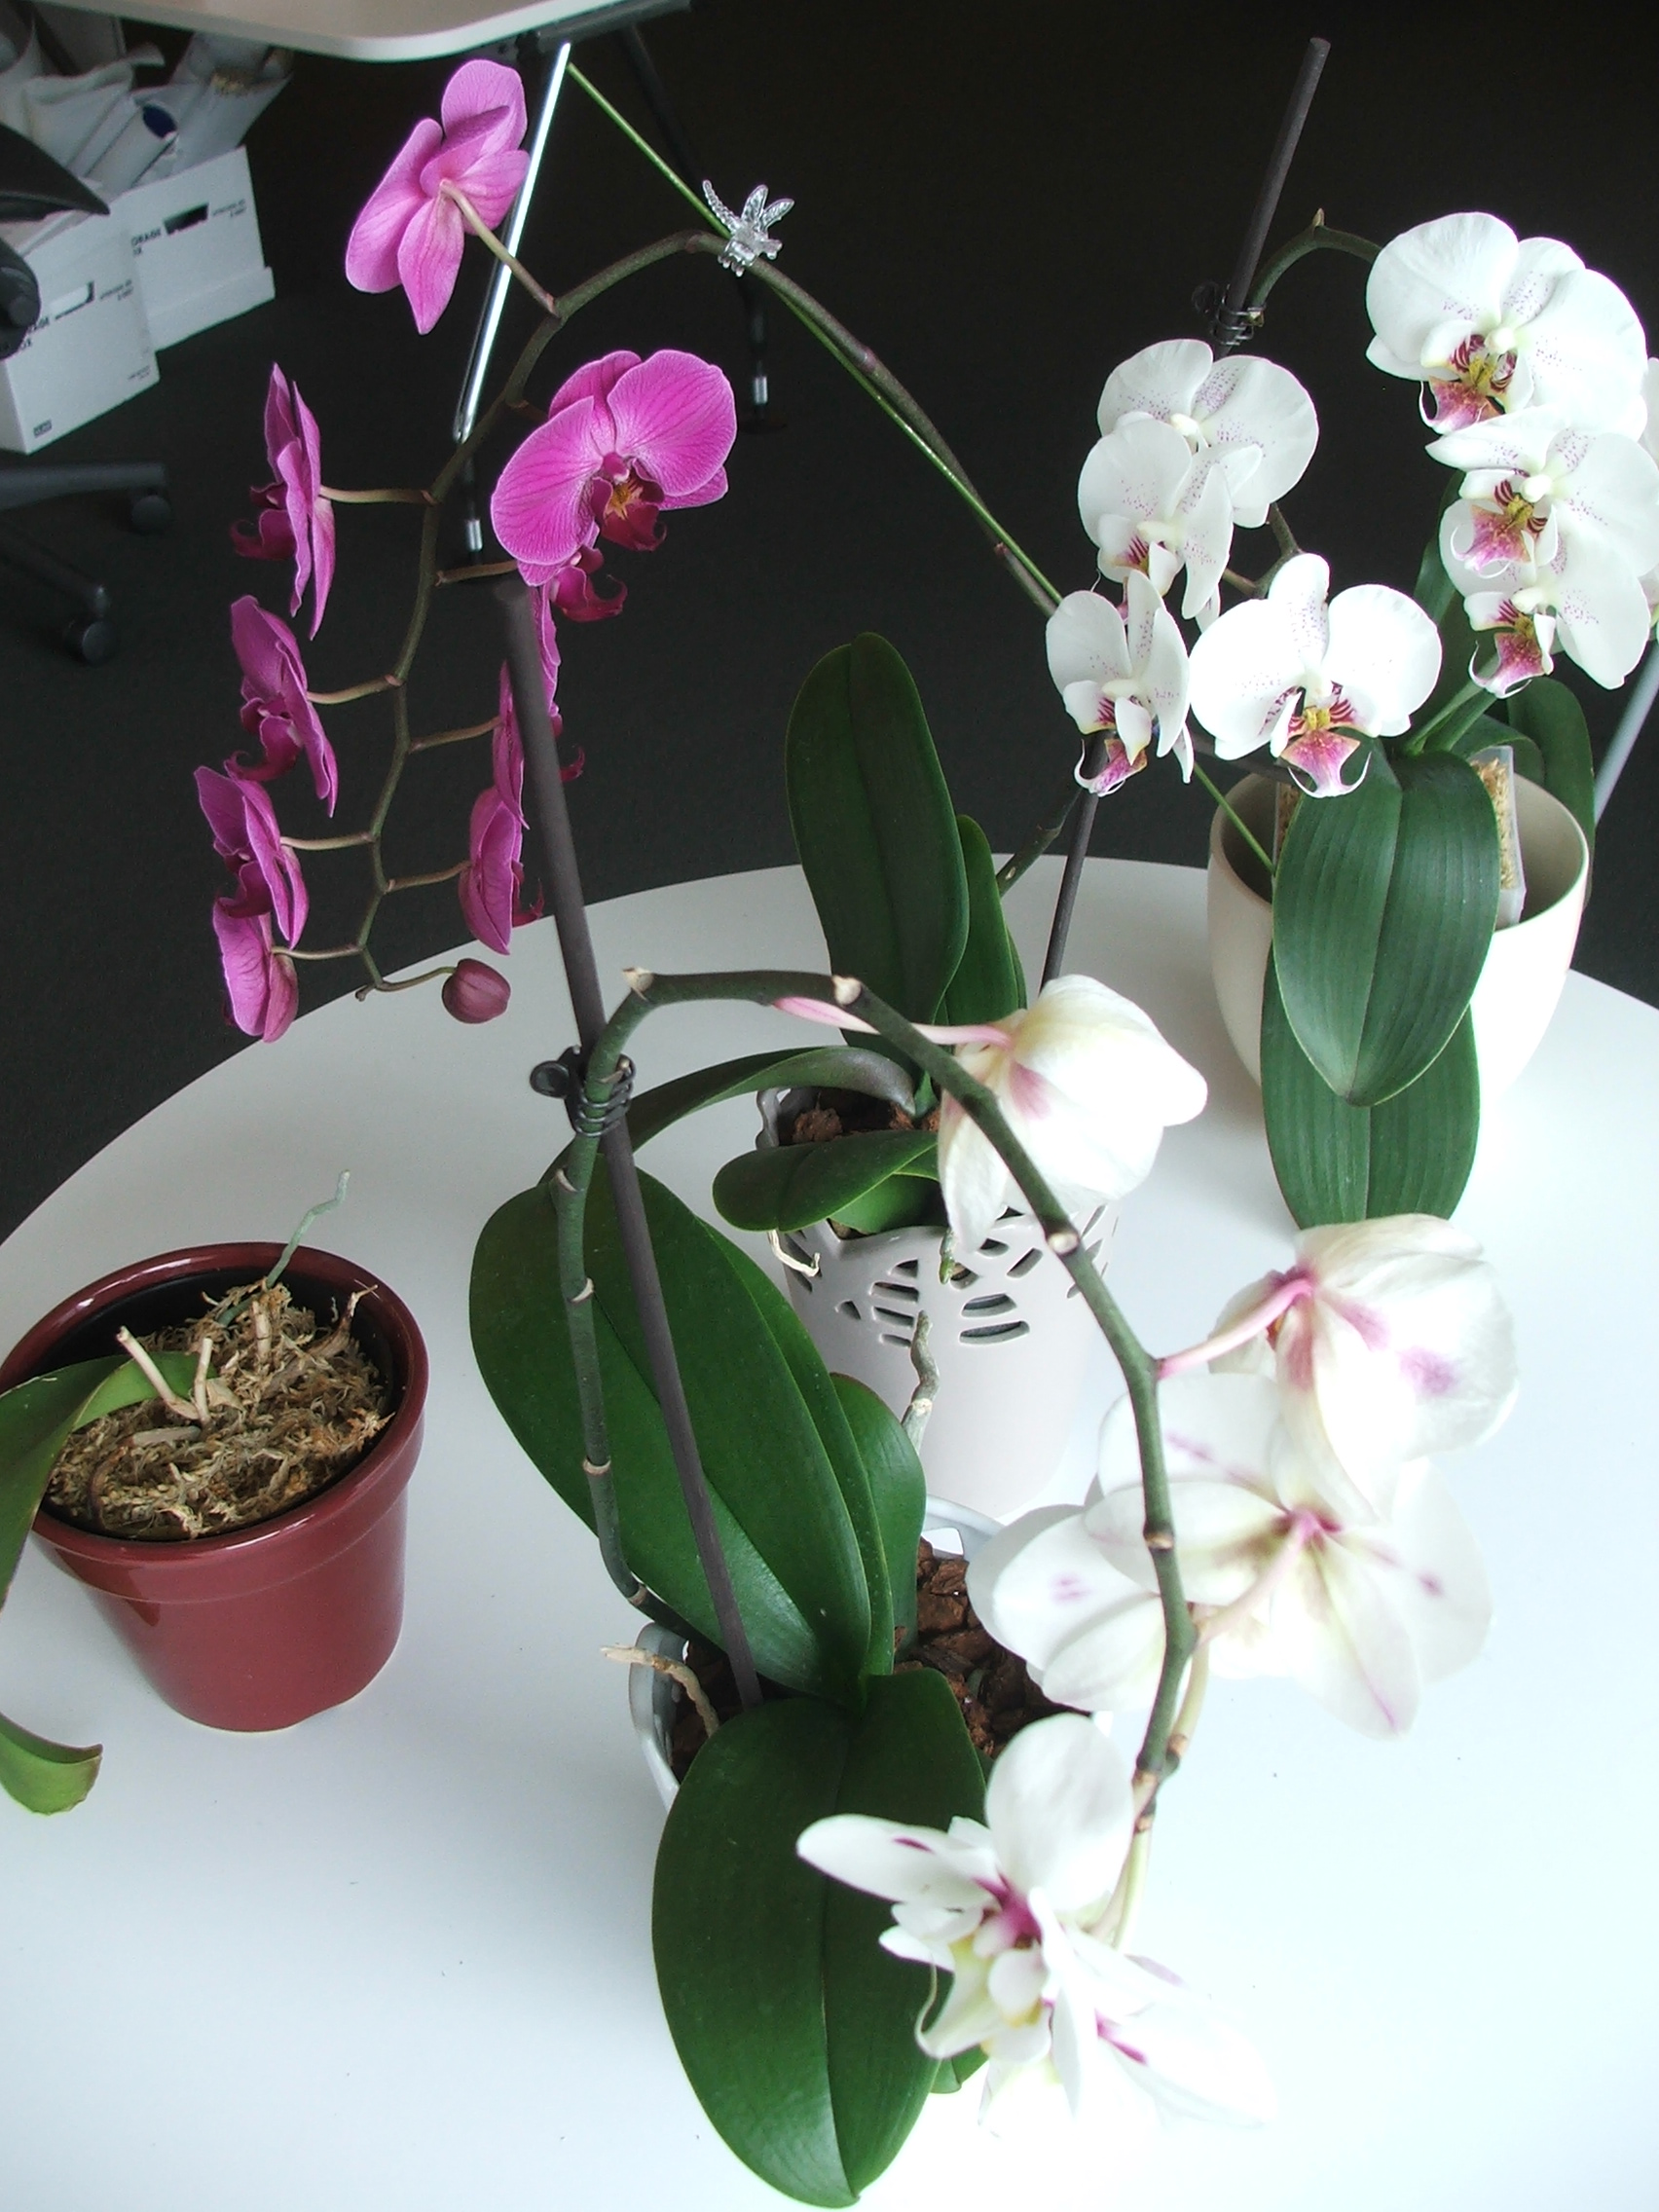 A collection of happy re-potted orchids in the Walker's office space.